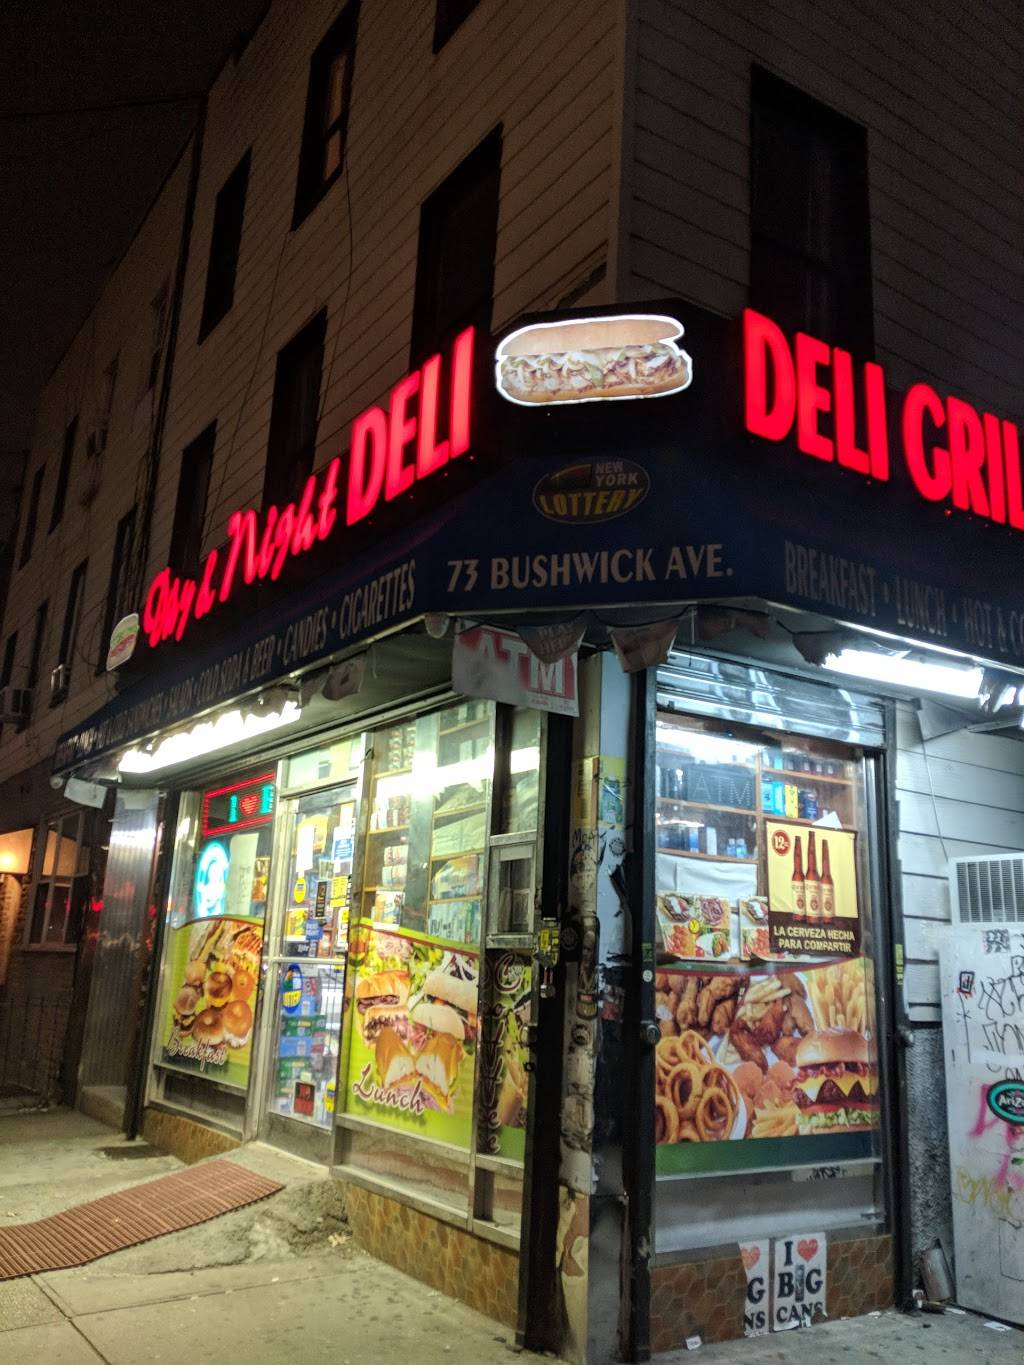 Day and Night Deli Grill   restaurant   73 Bushwick Ave, Brooklyn, NY 11211, USA   7184863800 OR +1 718-486-3800